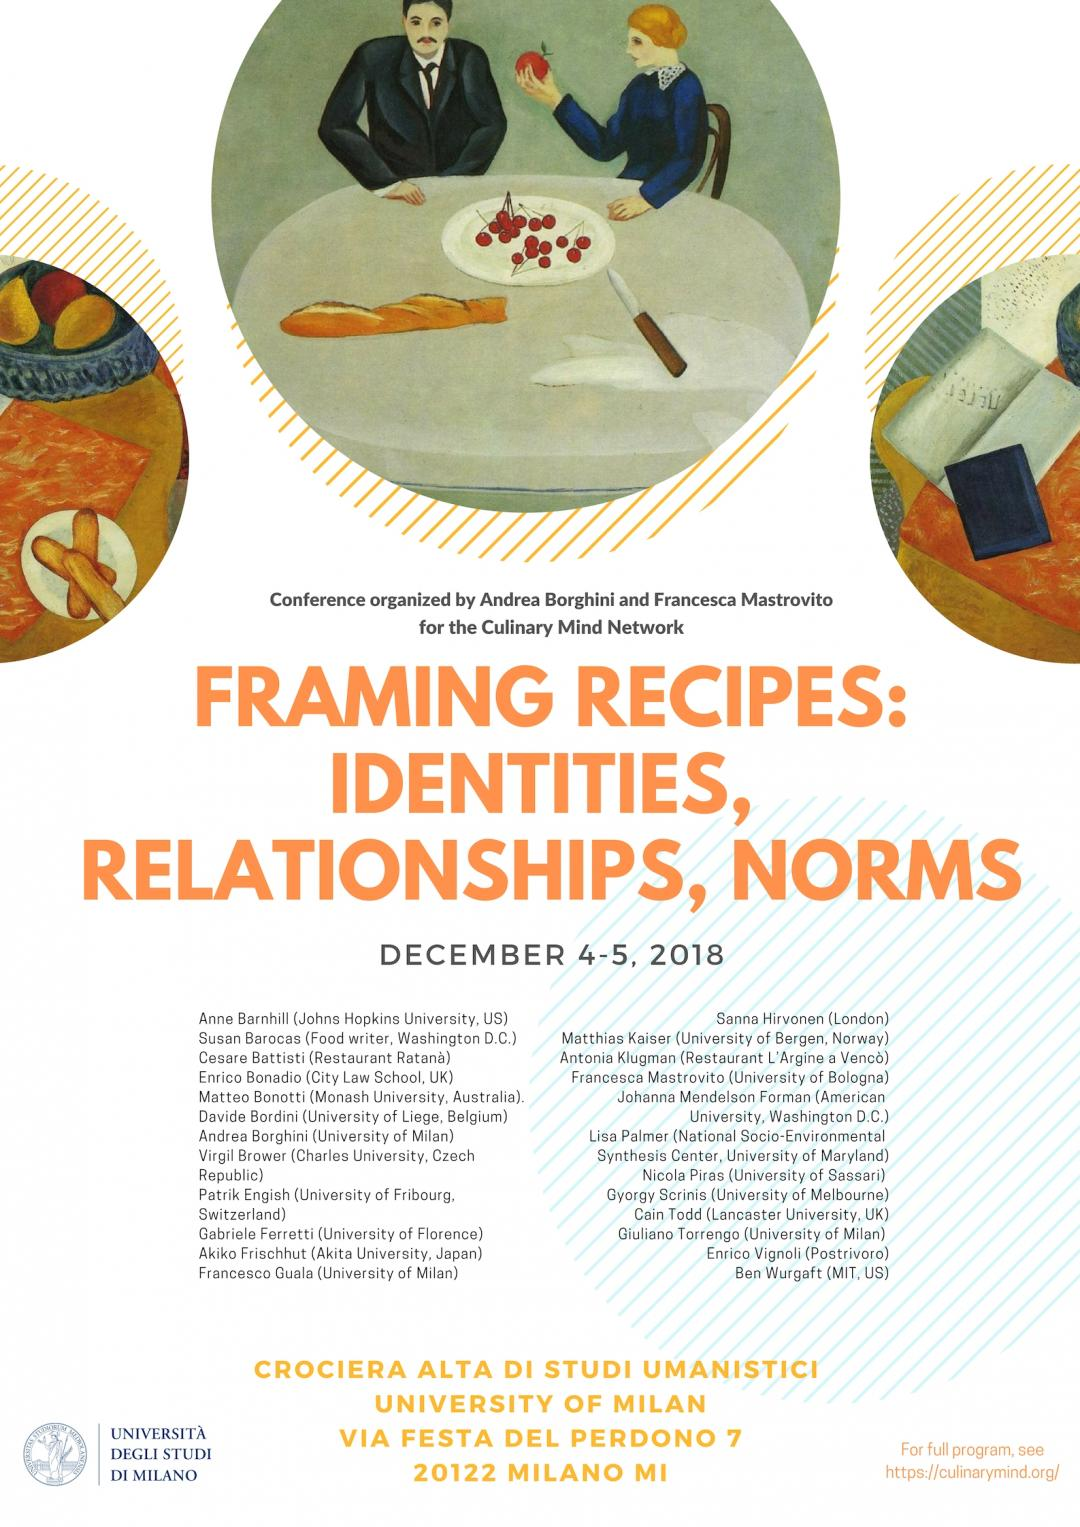 Framing Recipes - identity, relationship and norms